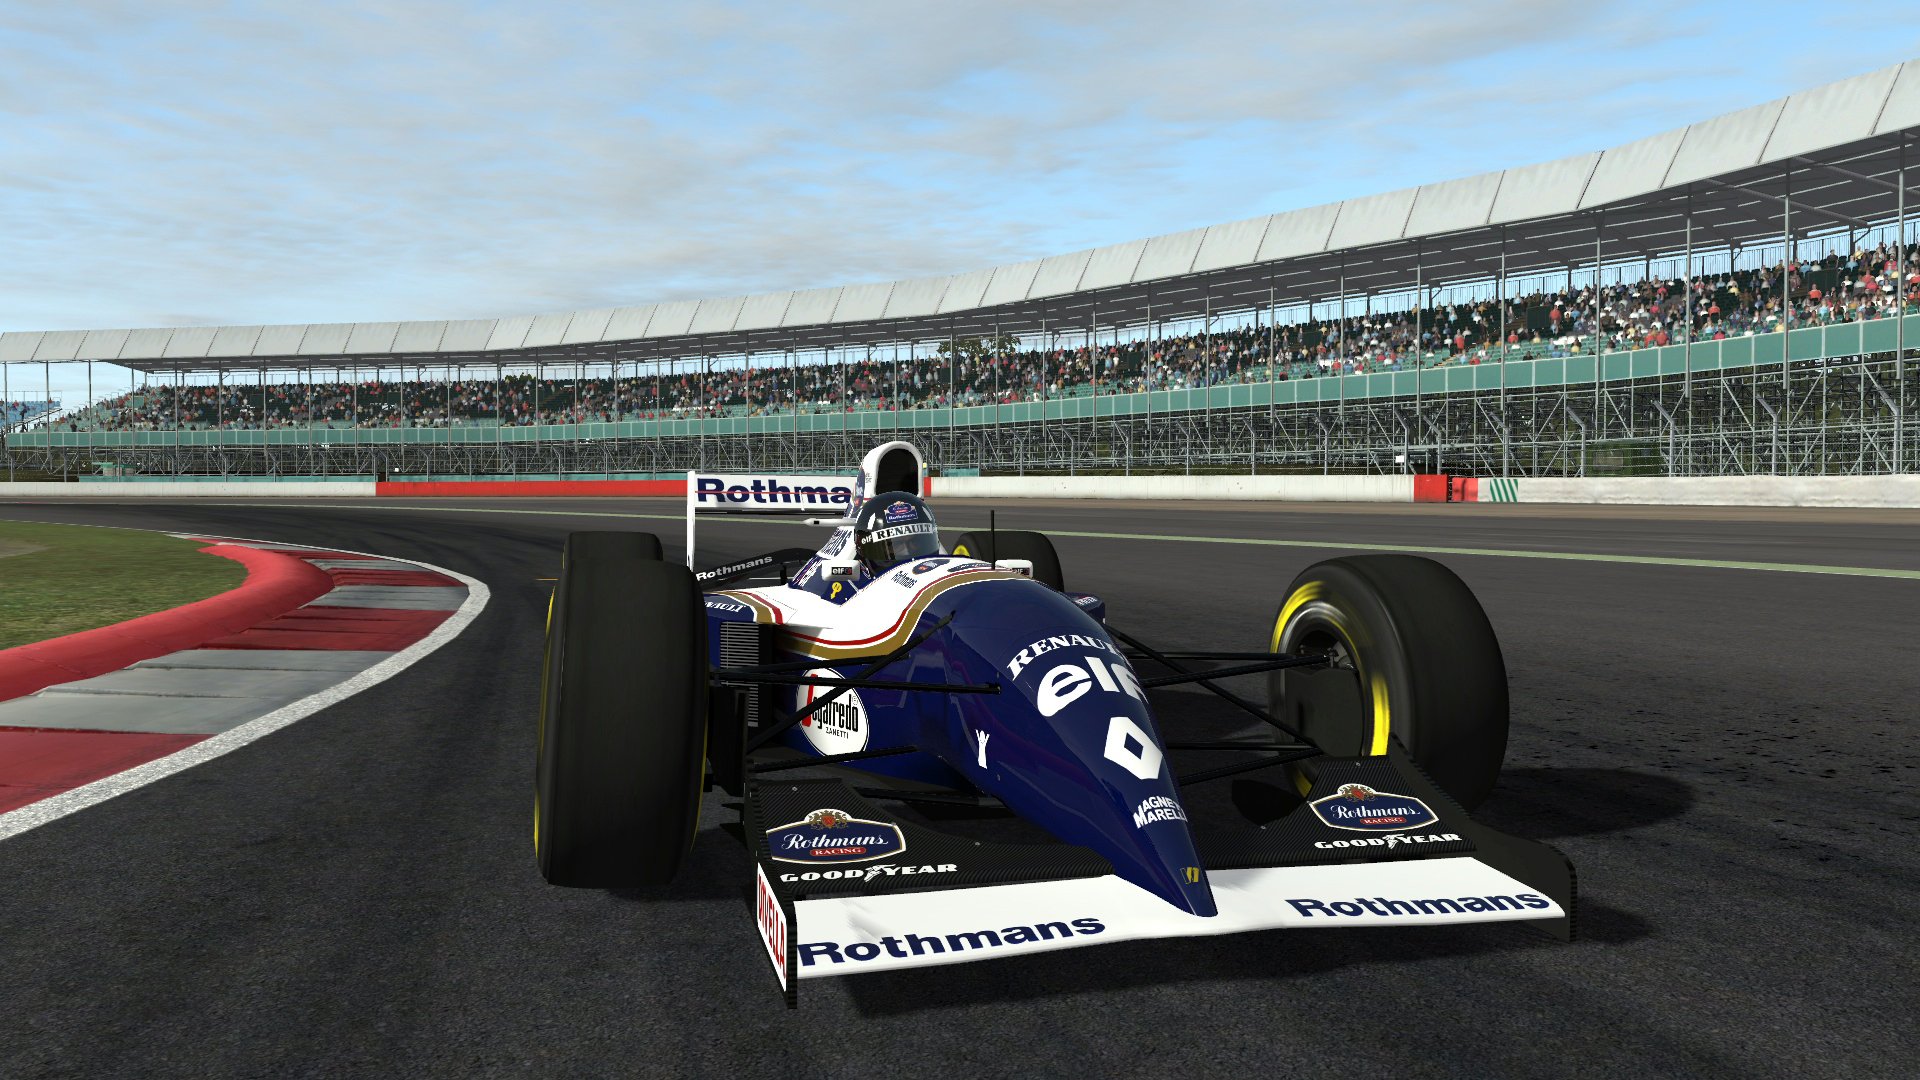 Williams at Silverstone